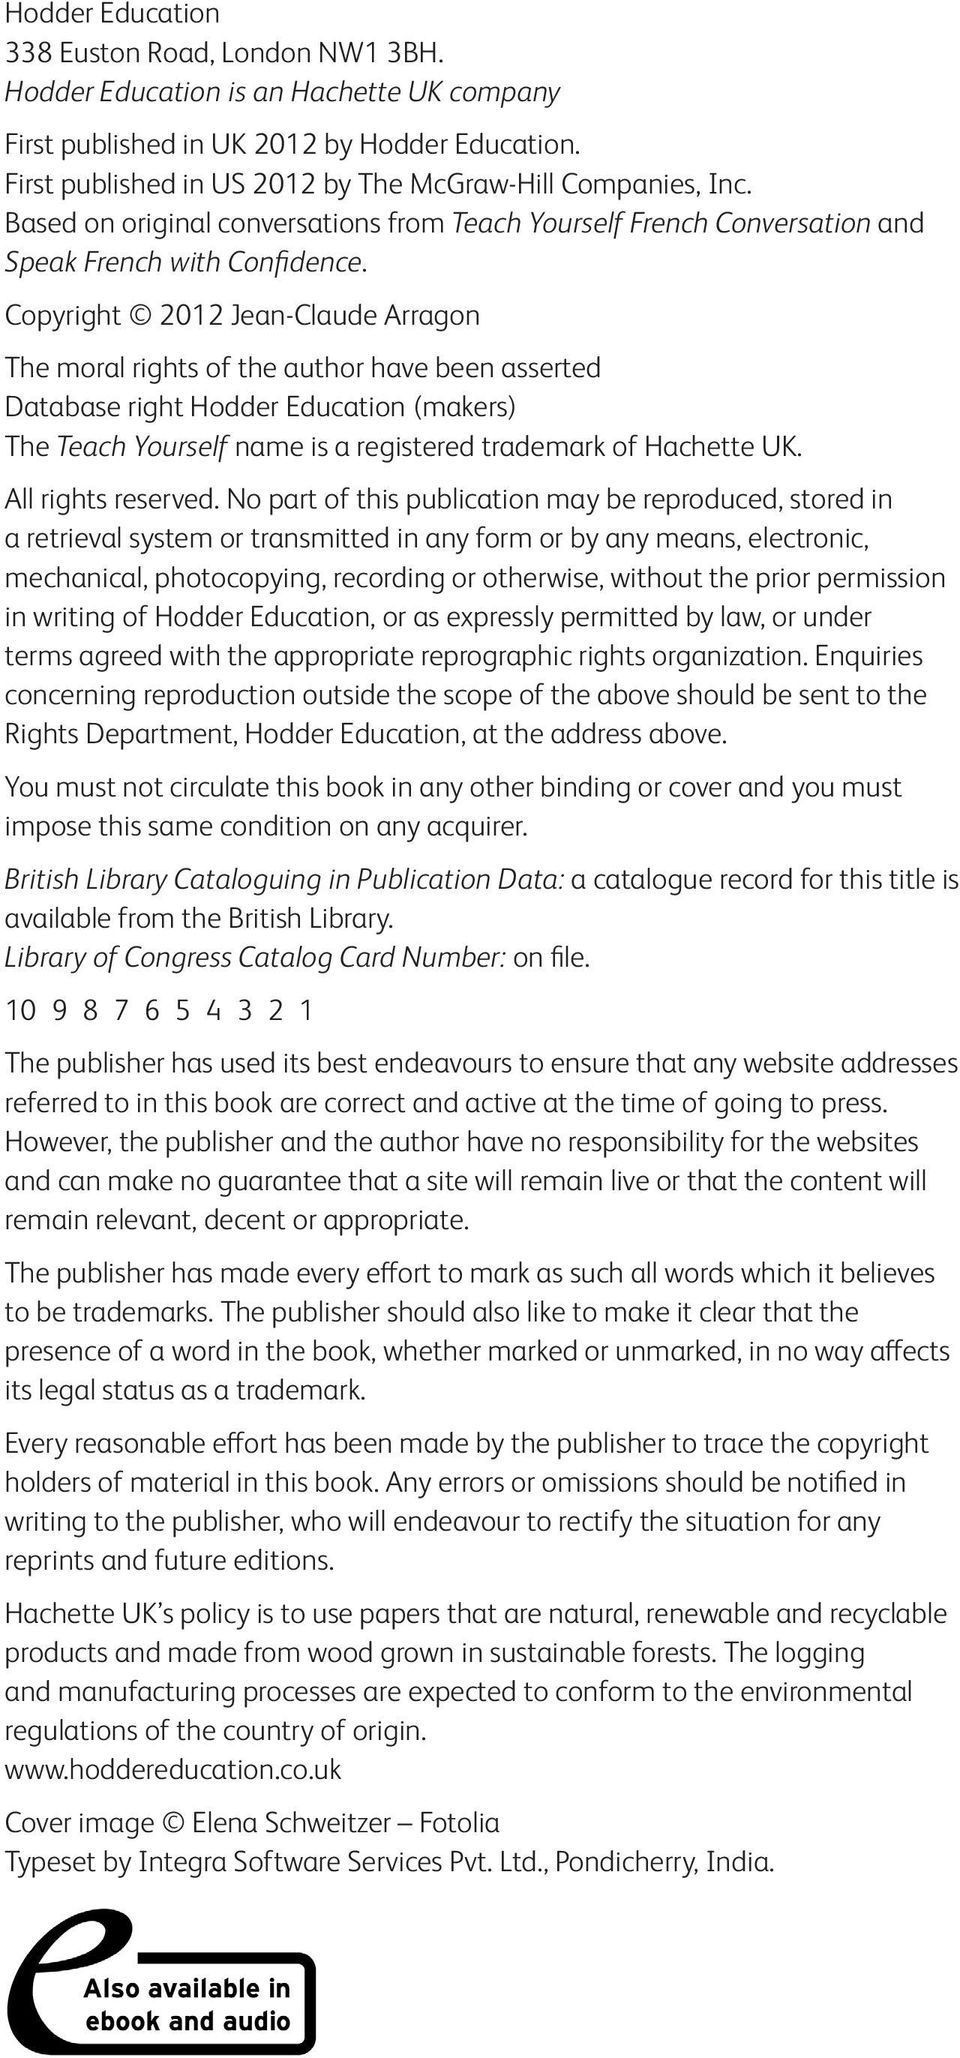 Copyright 2012 Jean-Claude Arragon The moral rights of the author have been asserted Database right Hodder Education (makers) The Teach Yourself name is a registered trademark of Hachette UK.